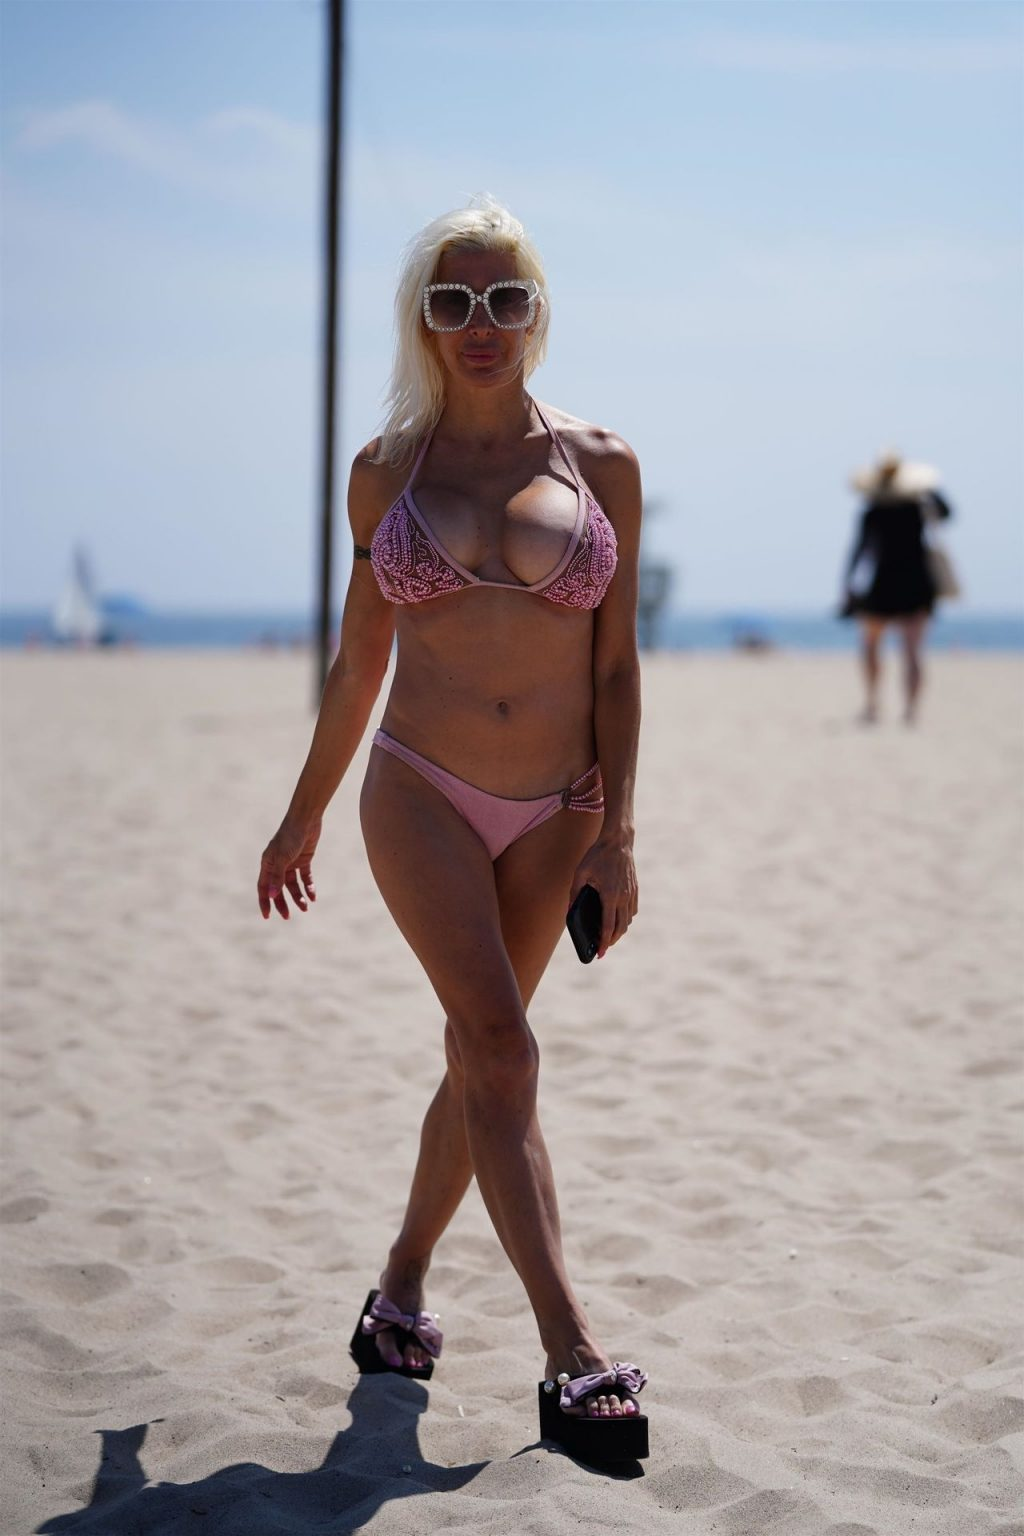 Frenchy Morgan Joins Ricky Rebel for Coffee and a Walk on the Beach (53 Photos)